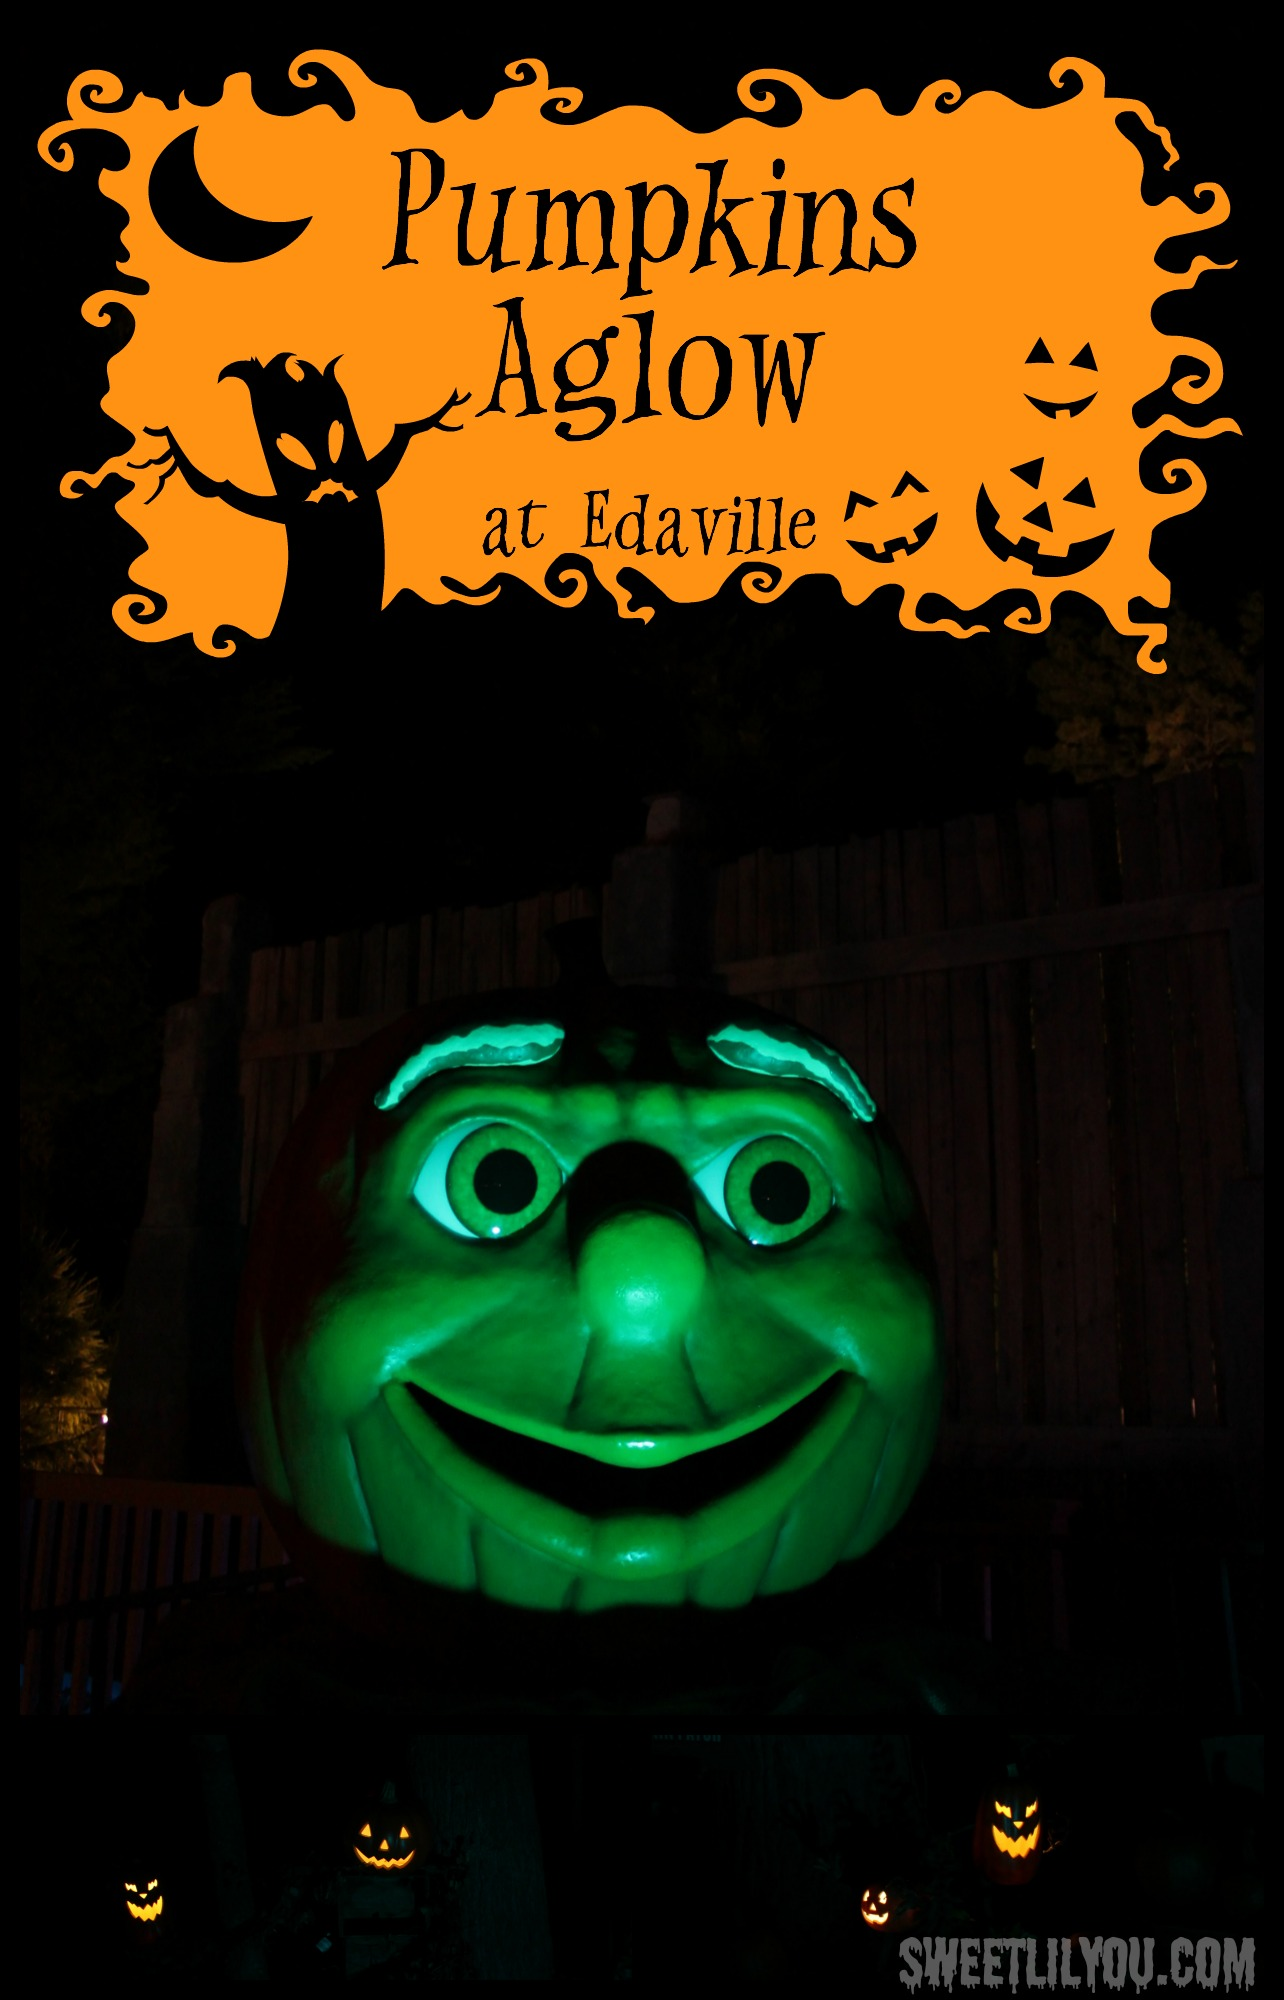 Pumpkins Aglow at Edaville USA this October